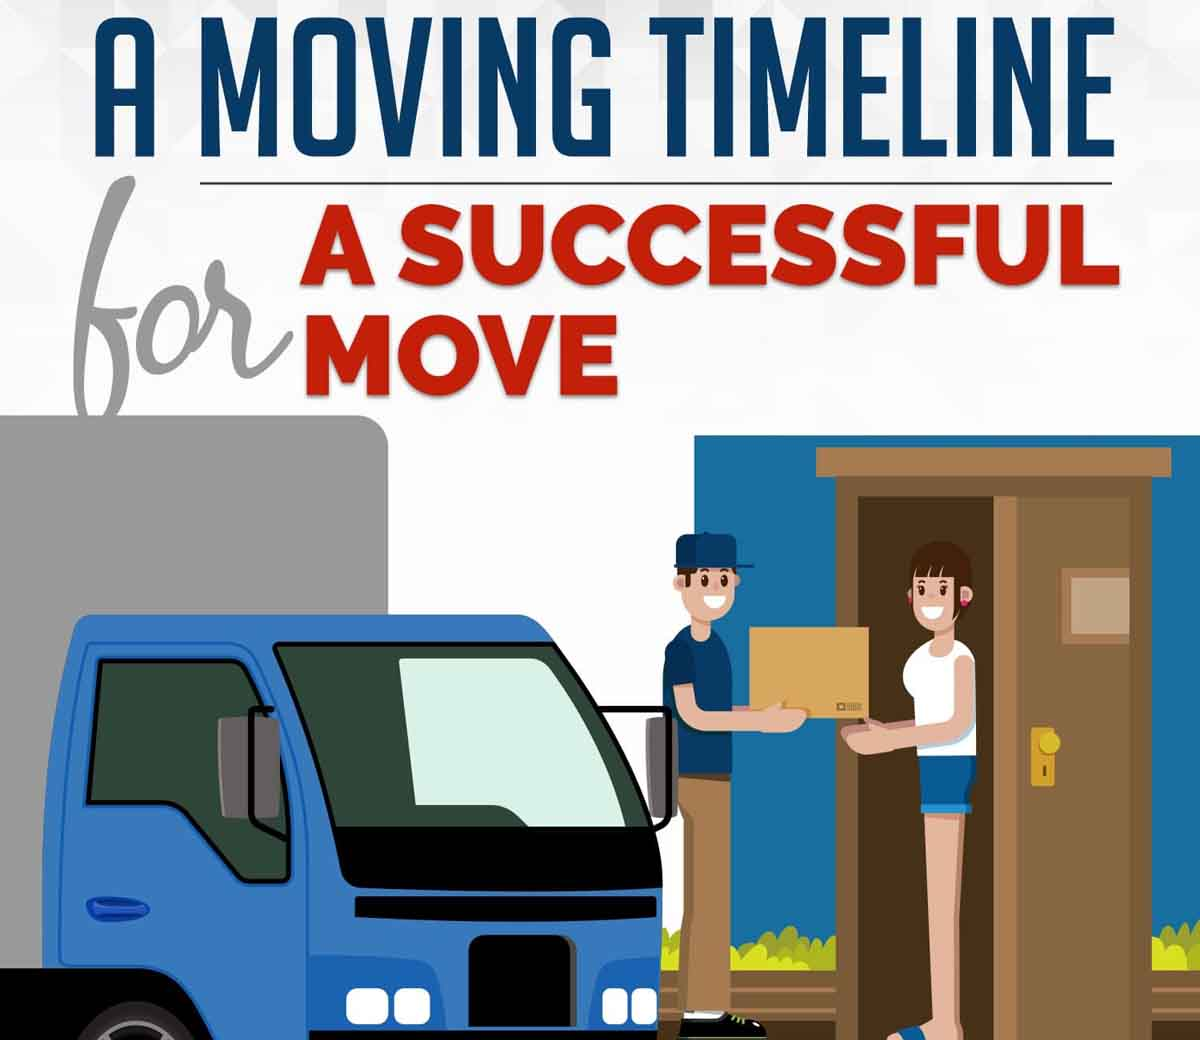 A Moving Timeline for a Successful Move